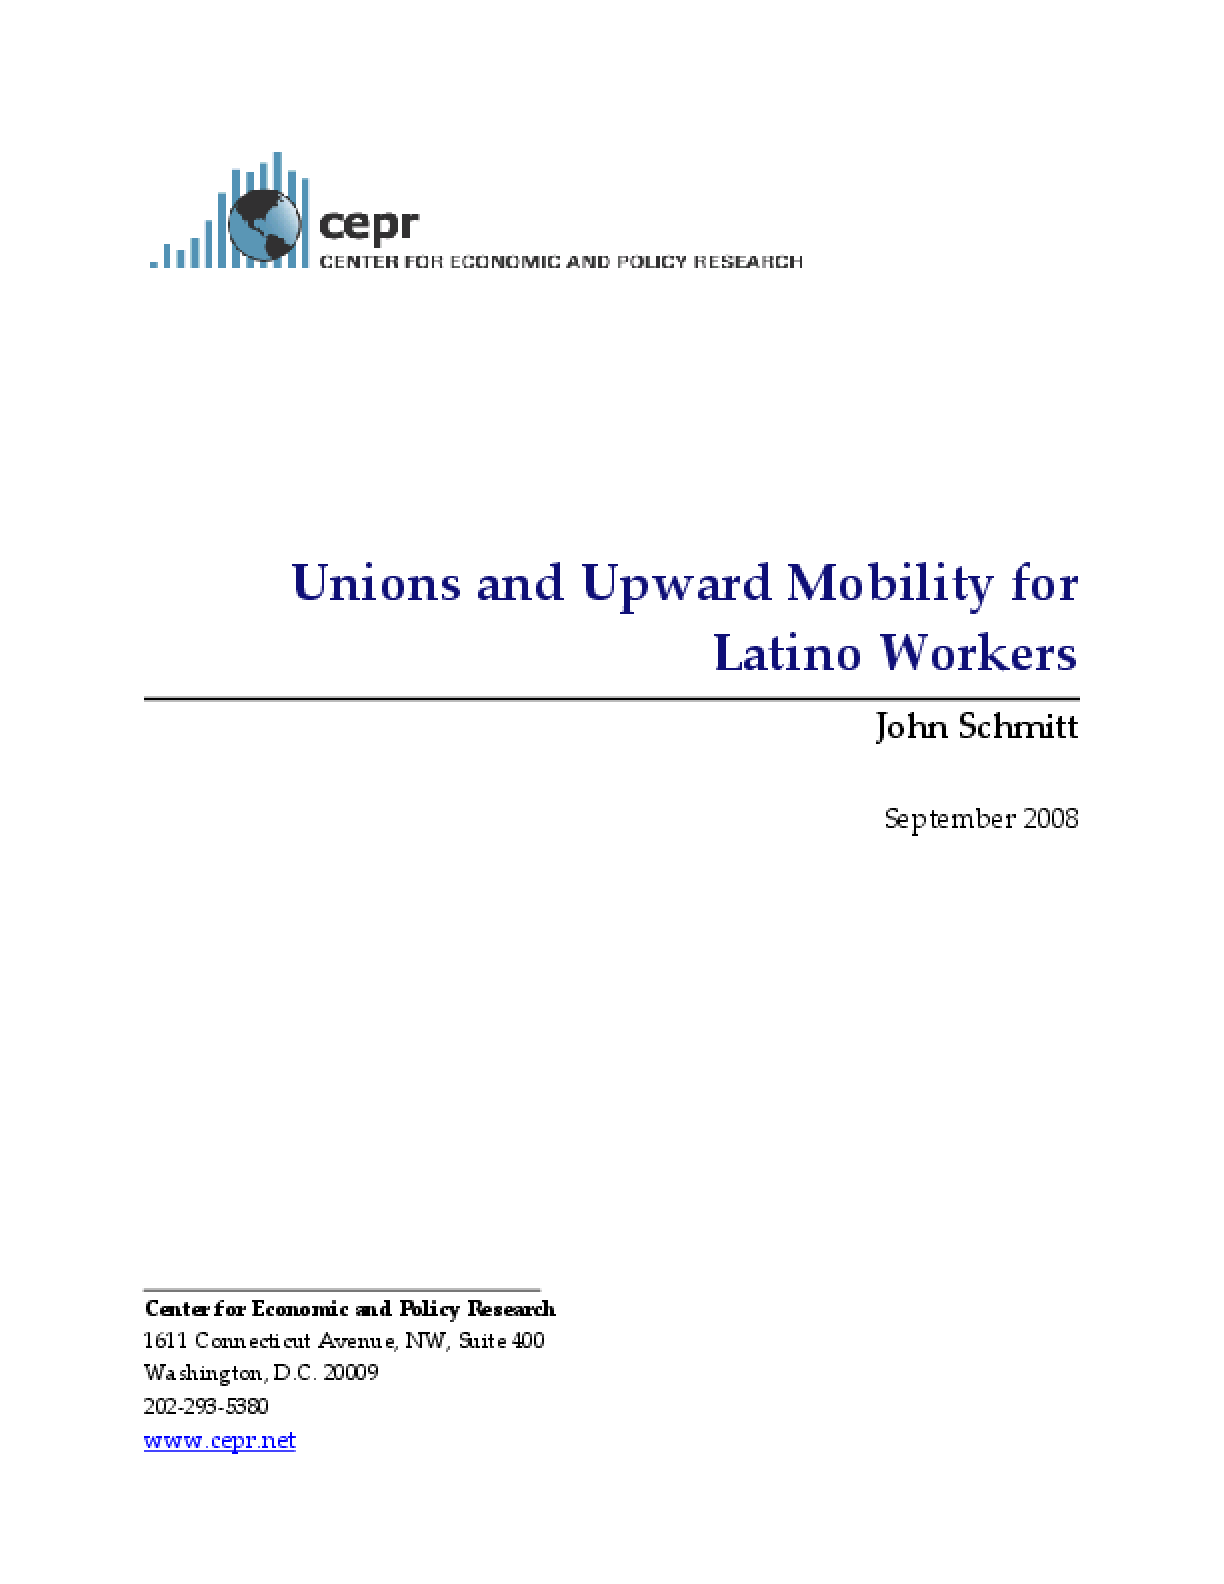 Unions and Upward Mobility for Latino Workers